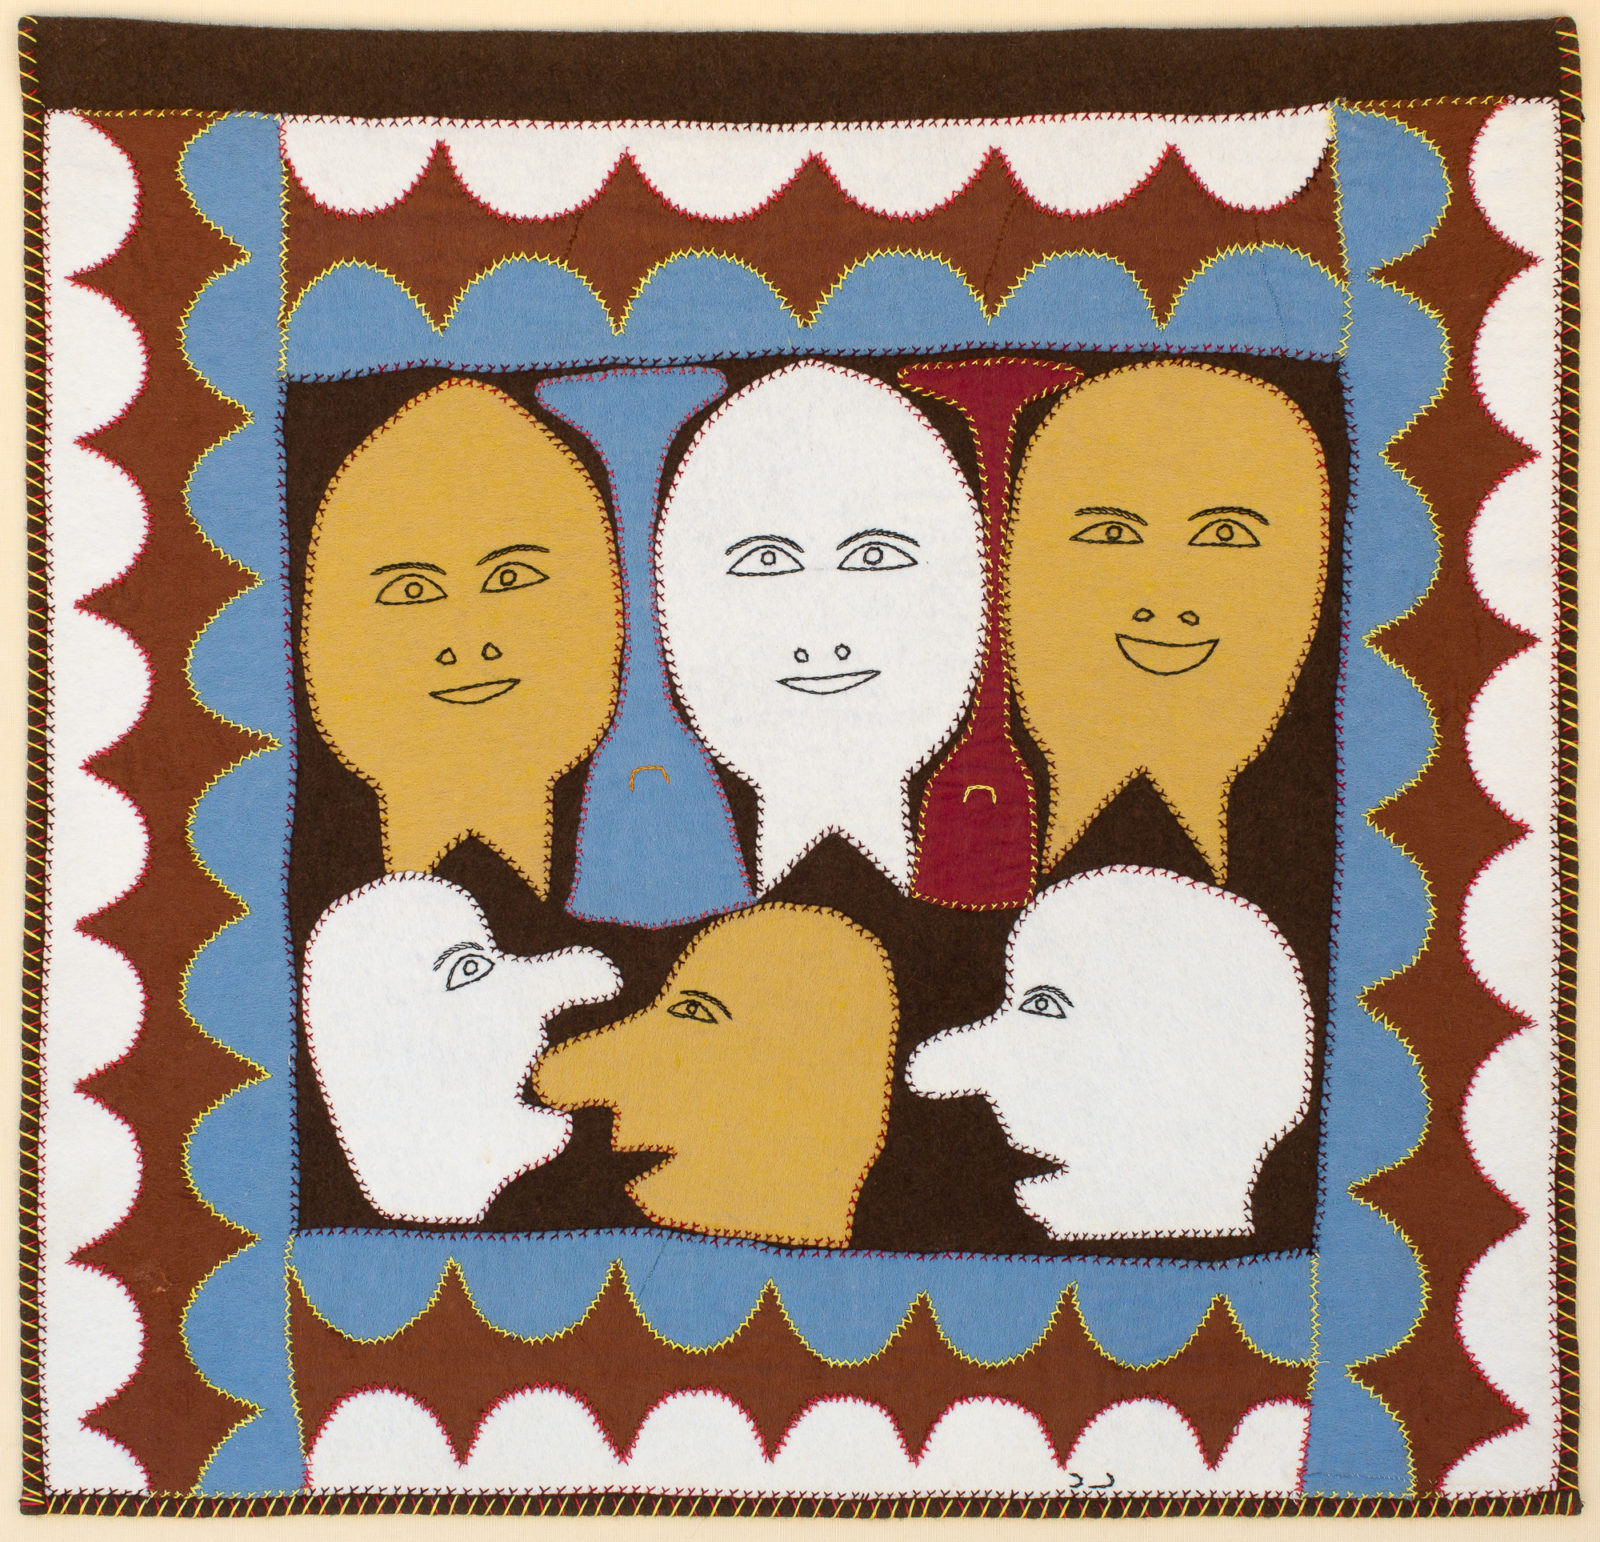 Marion Tuu'luq - untitled (faces)